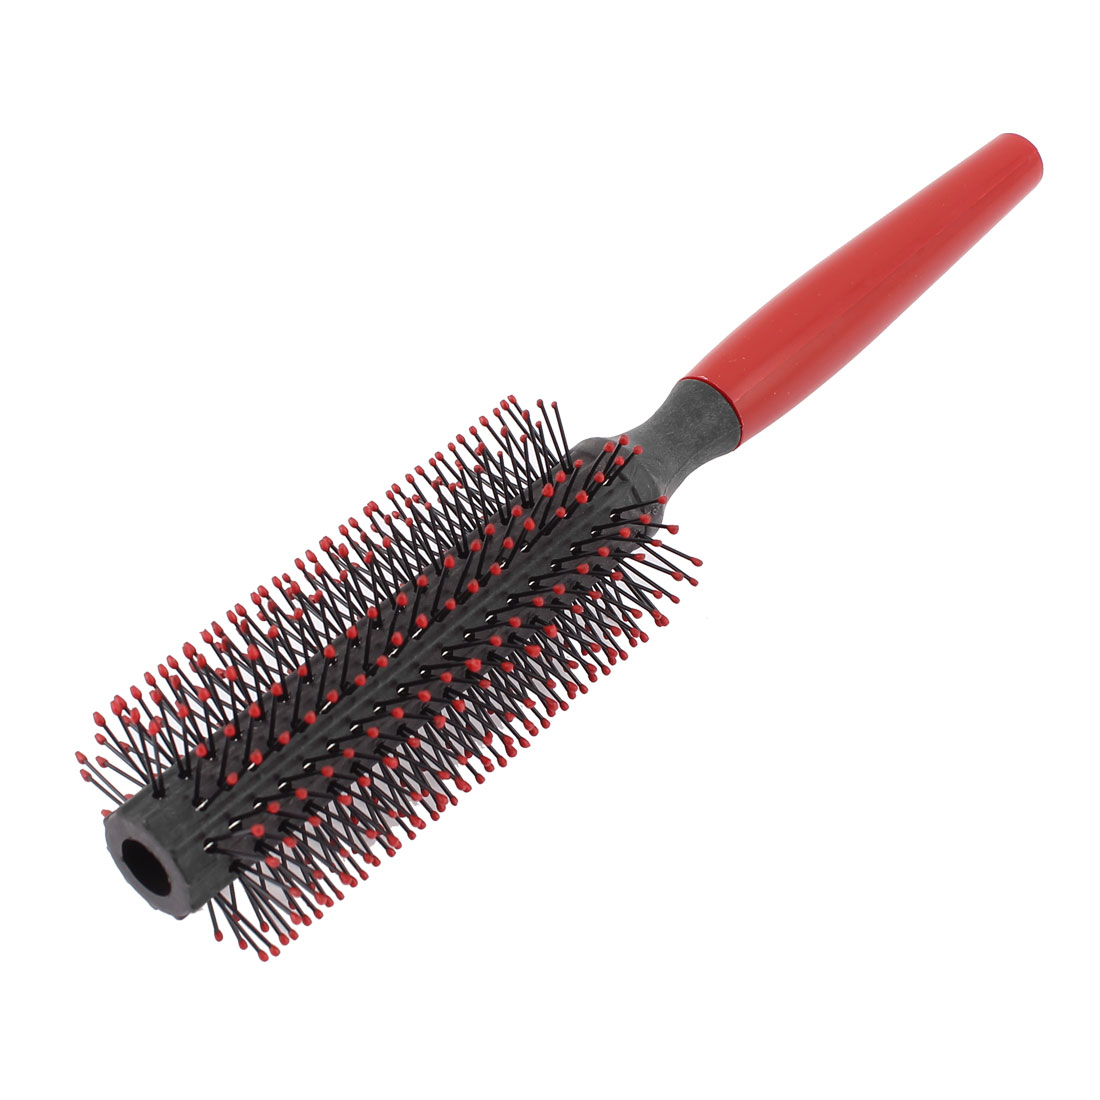 Flexible Hair Styling Bristle Hair Curling Roller Comb Brush